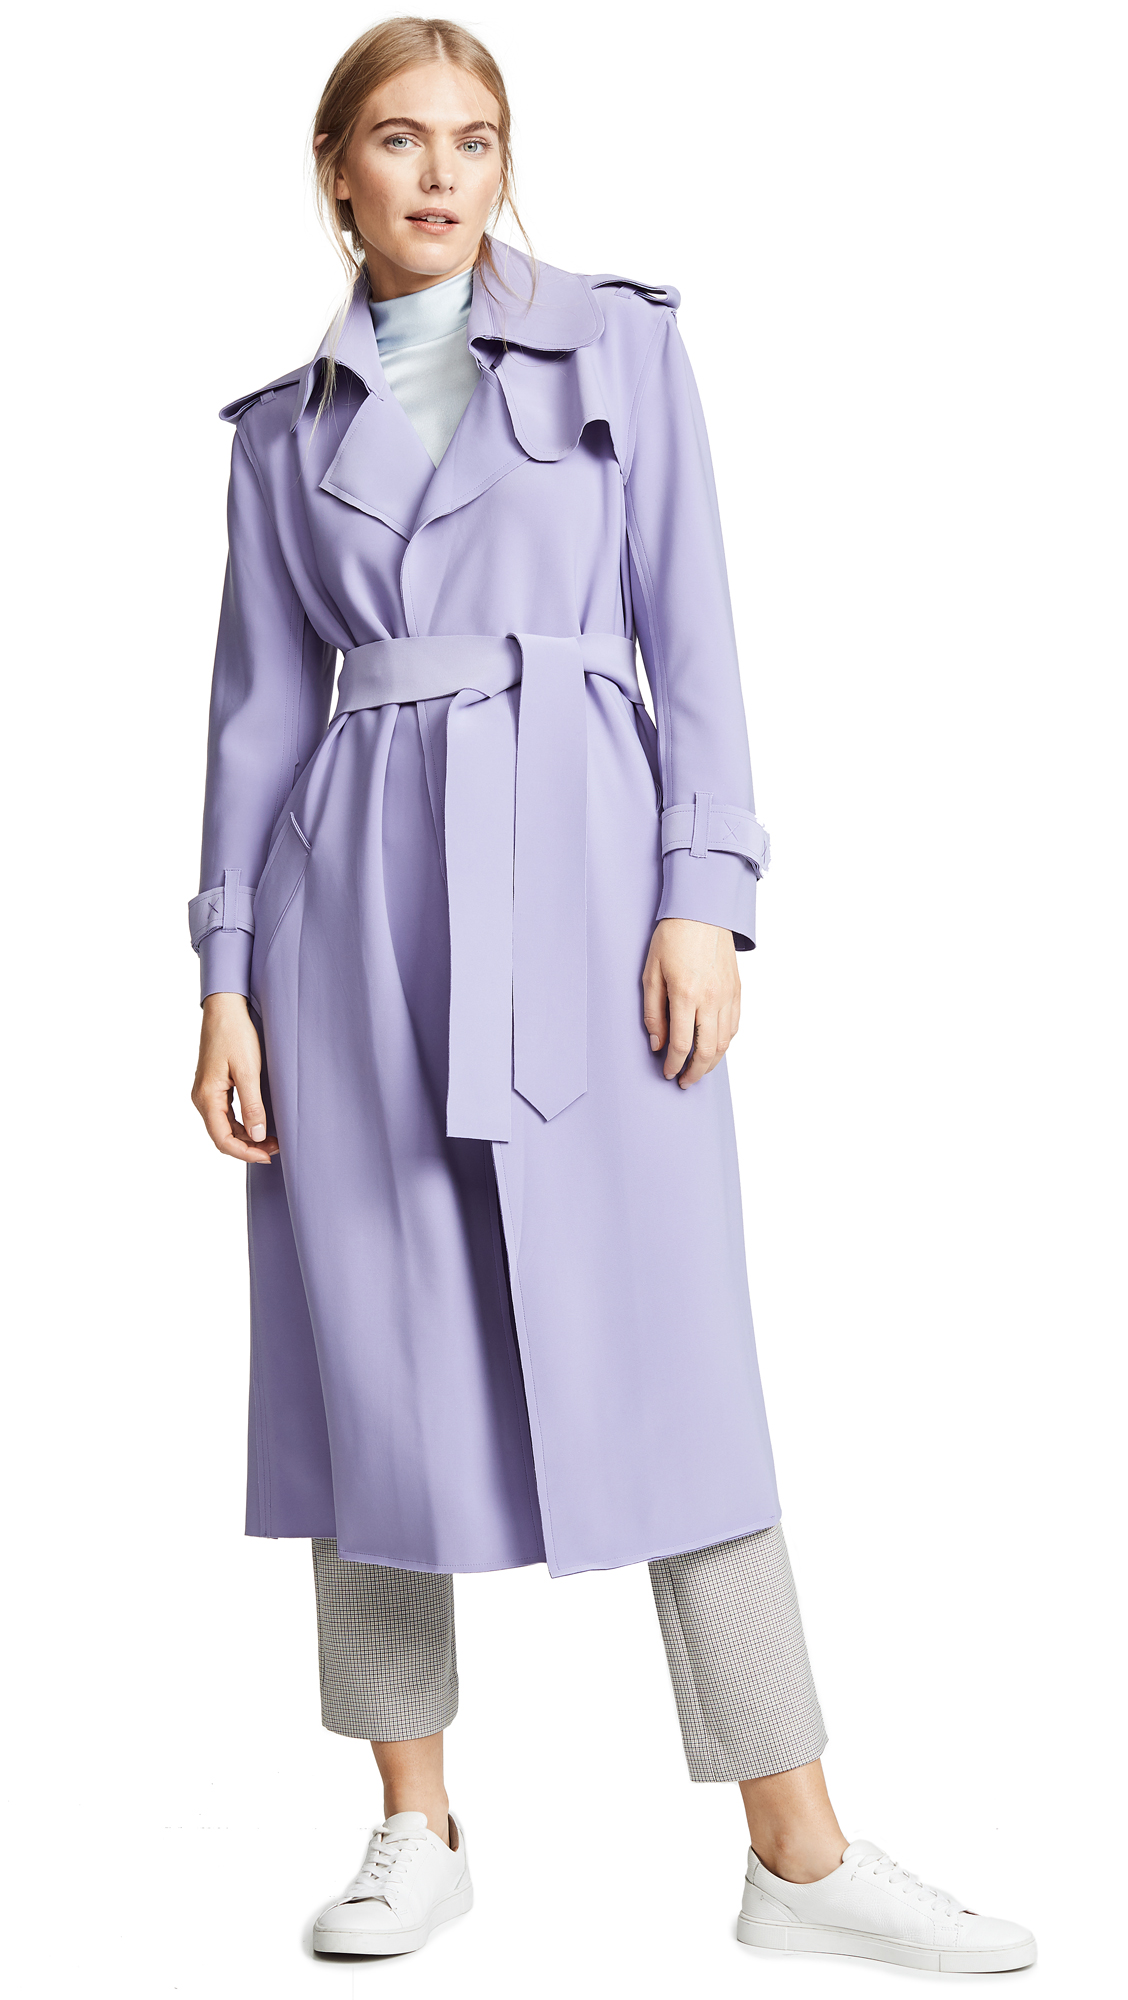 Norma Kamali Double Breasted Trench - Violet